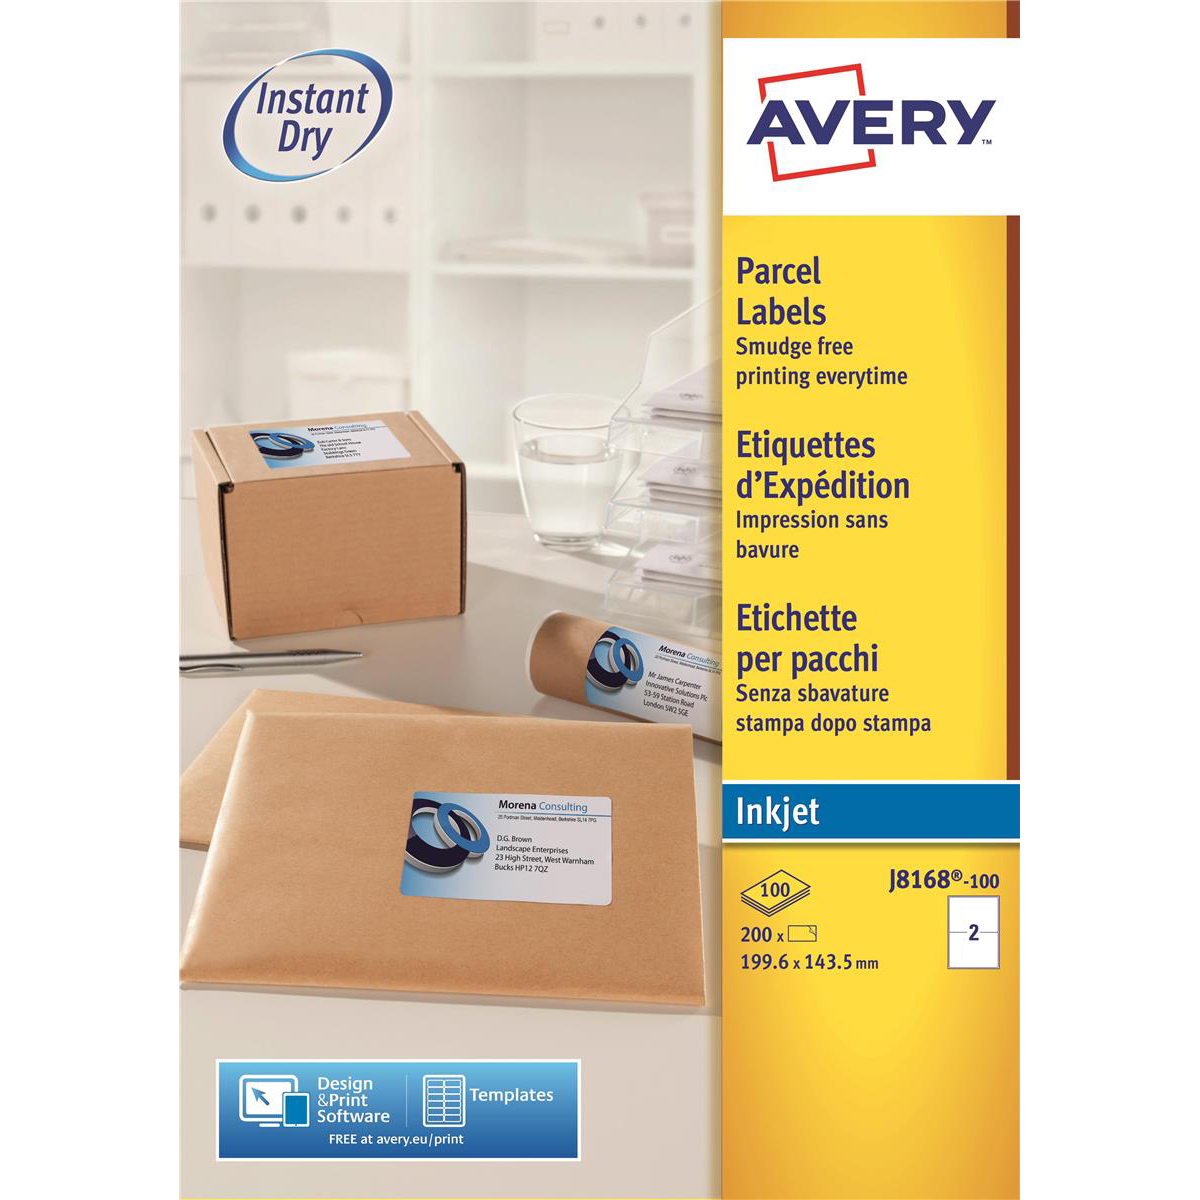 Avery QuickDRY Parcel Labels Inkjet 2 per Sheet 199.6x143.5mm White Ref J8168-100 200 Labels